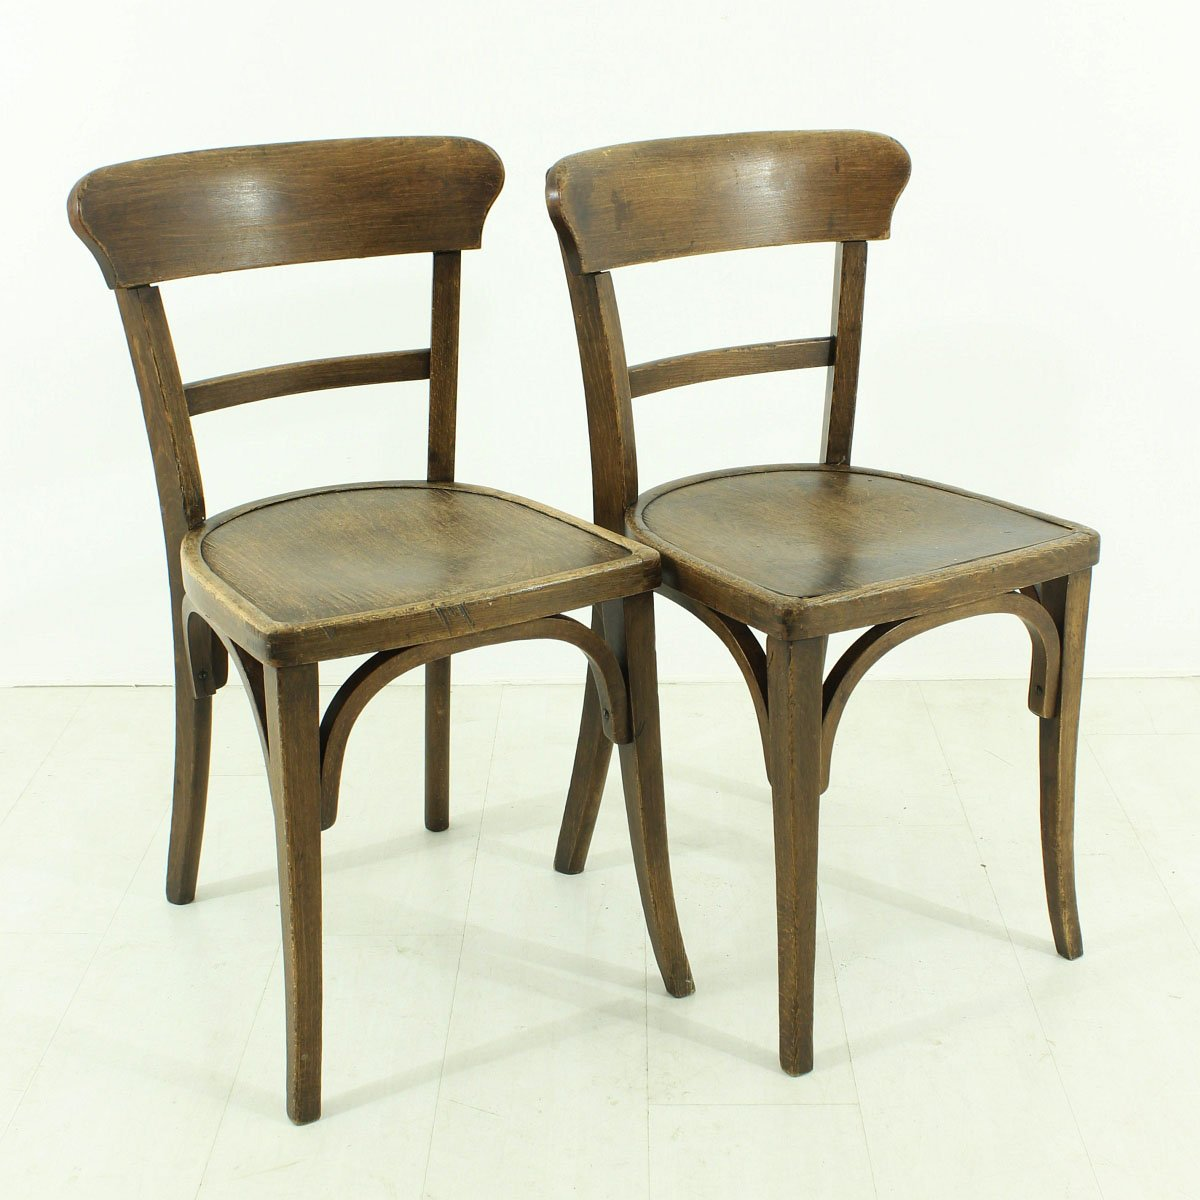 Vintage Dining Chairs 1930s Set of 2 for sale at Pamono